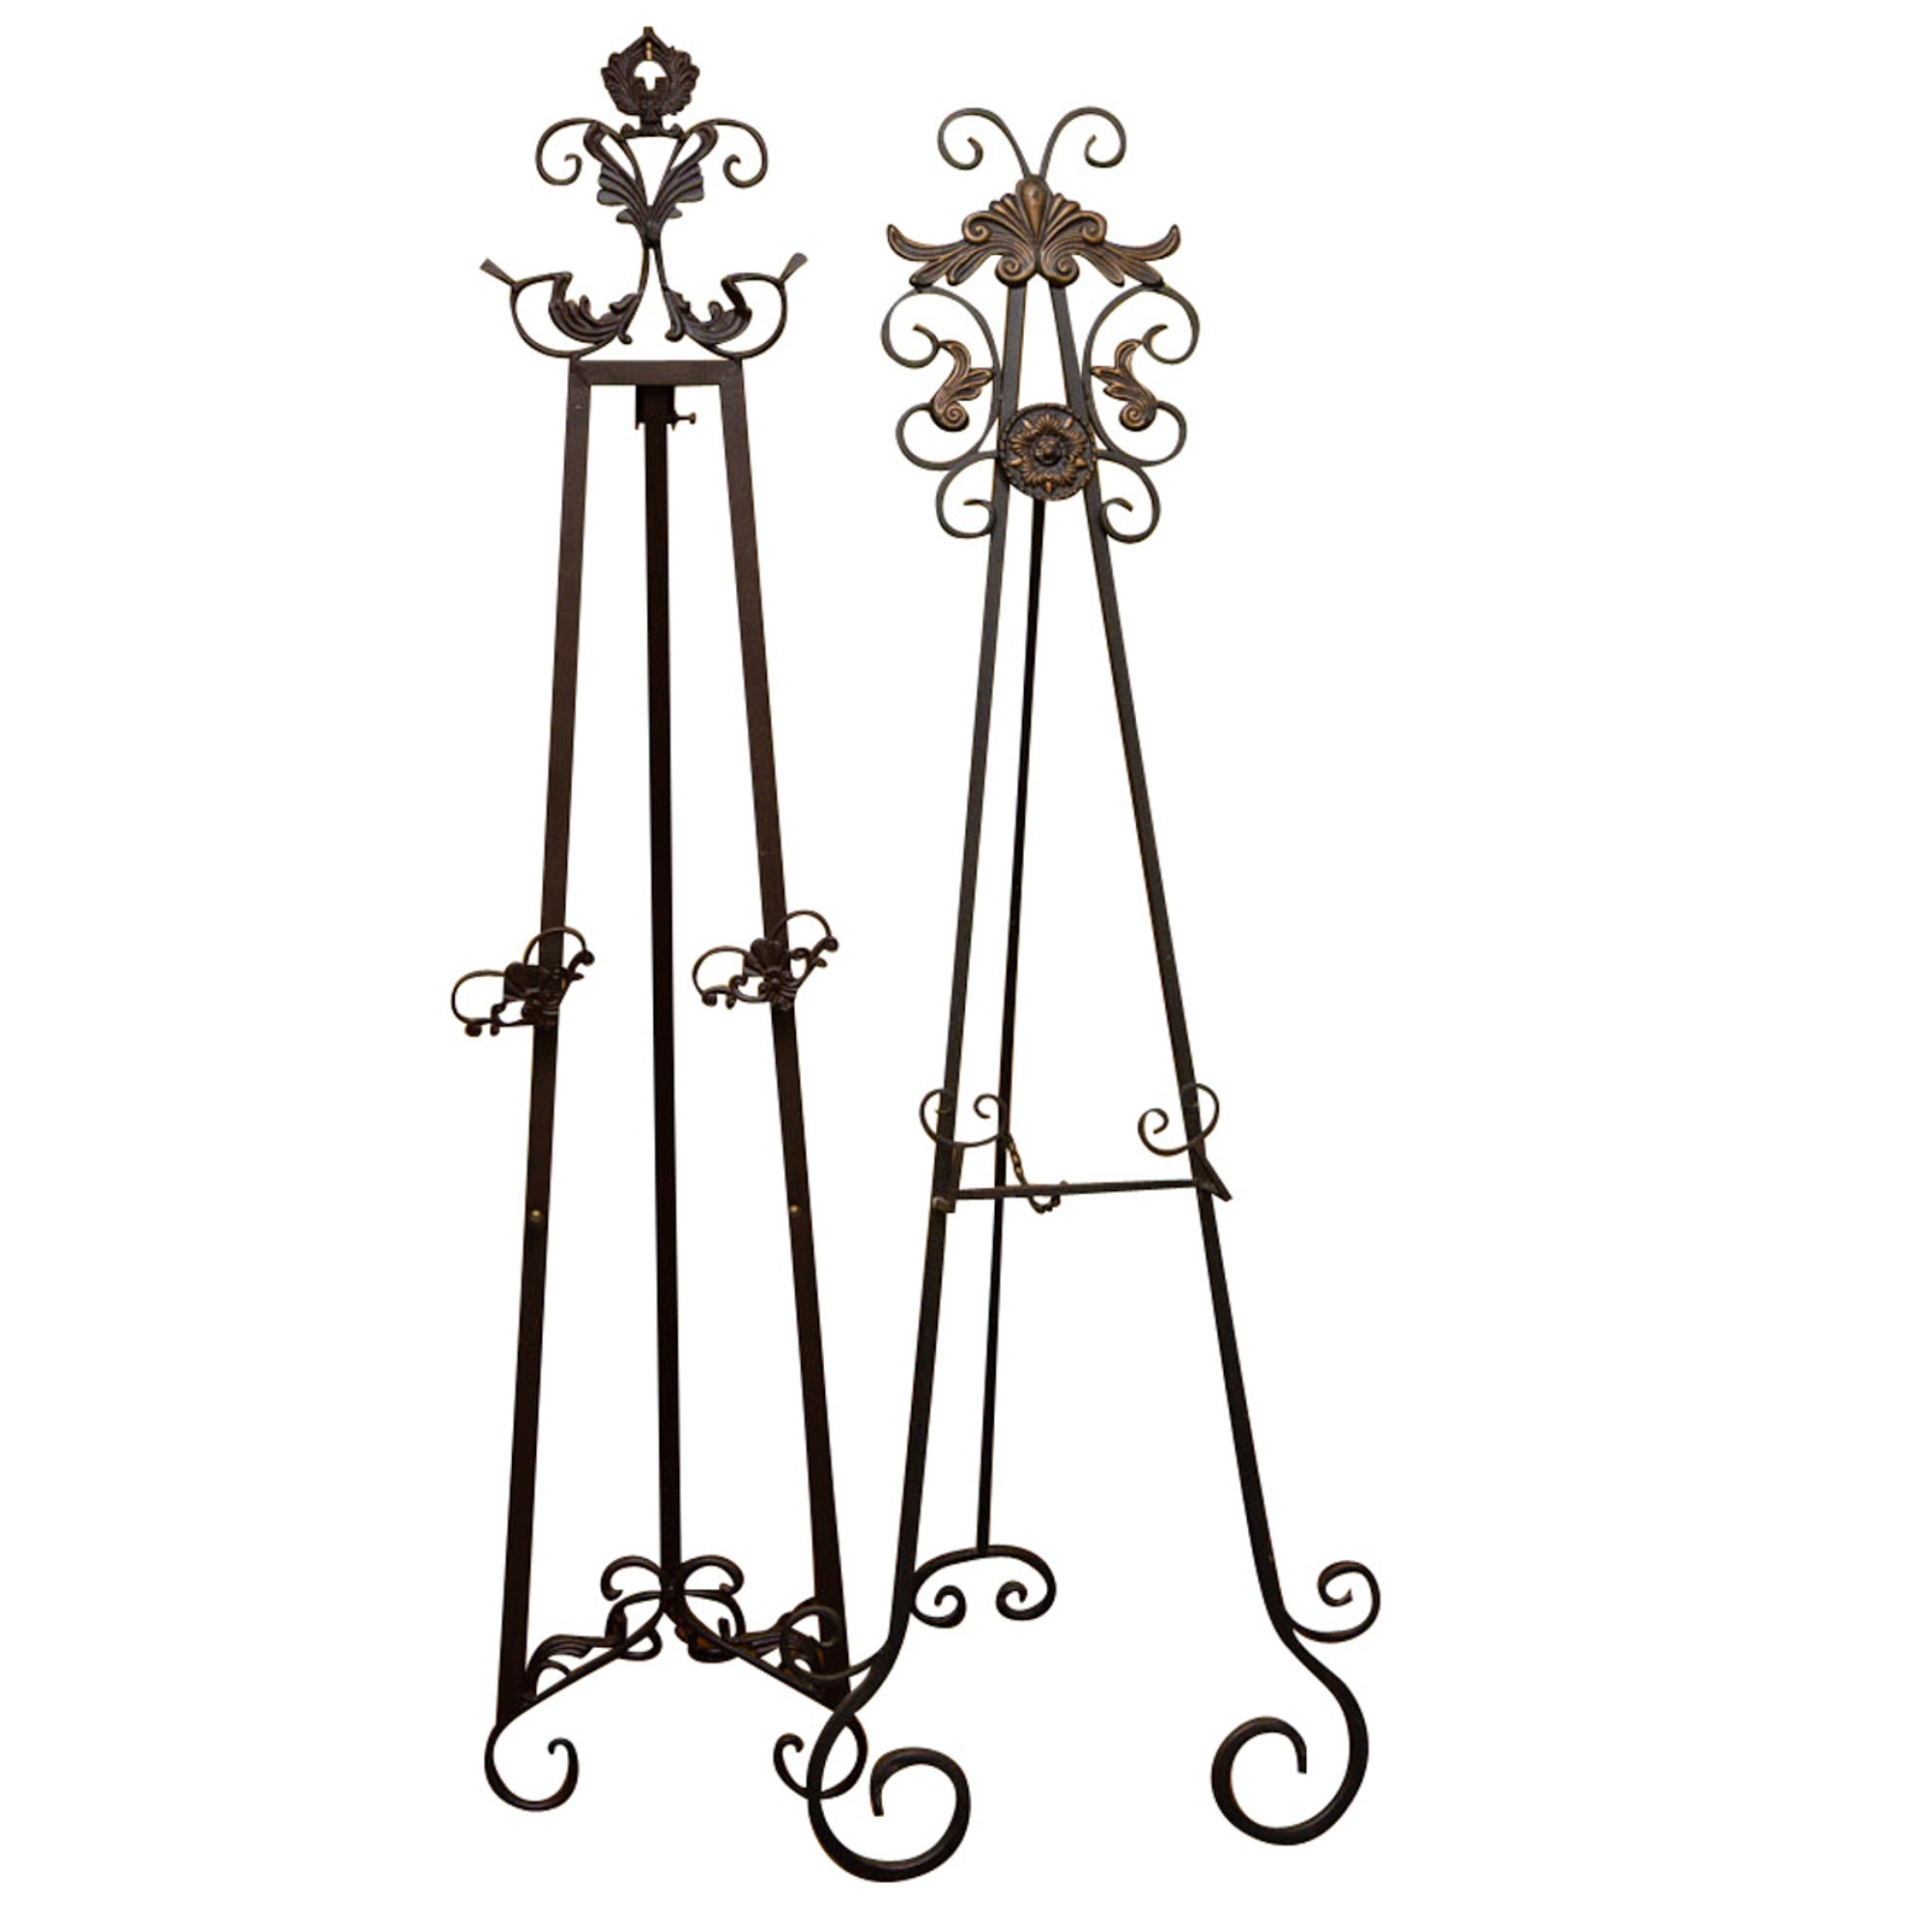 Scrolled Wrought Iron Easel Stands